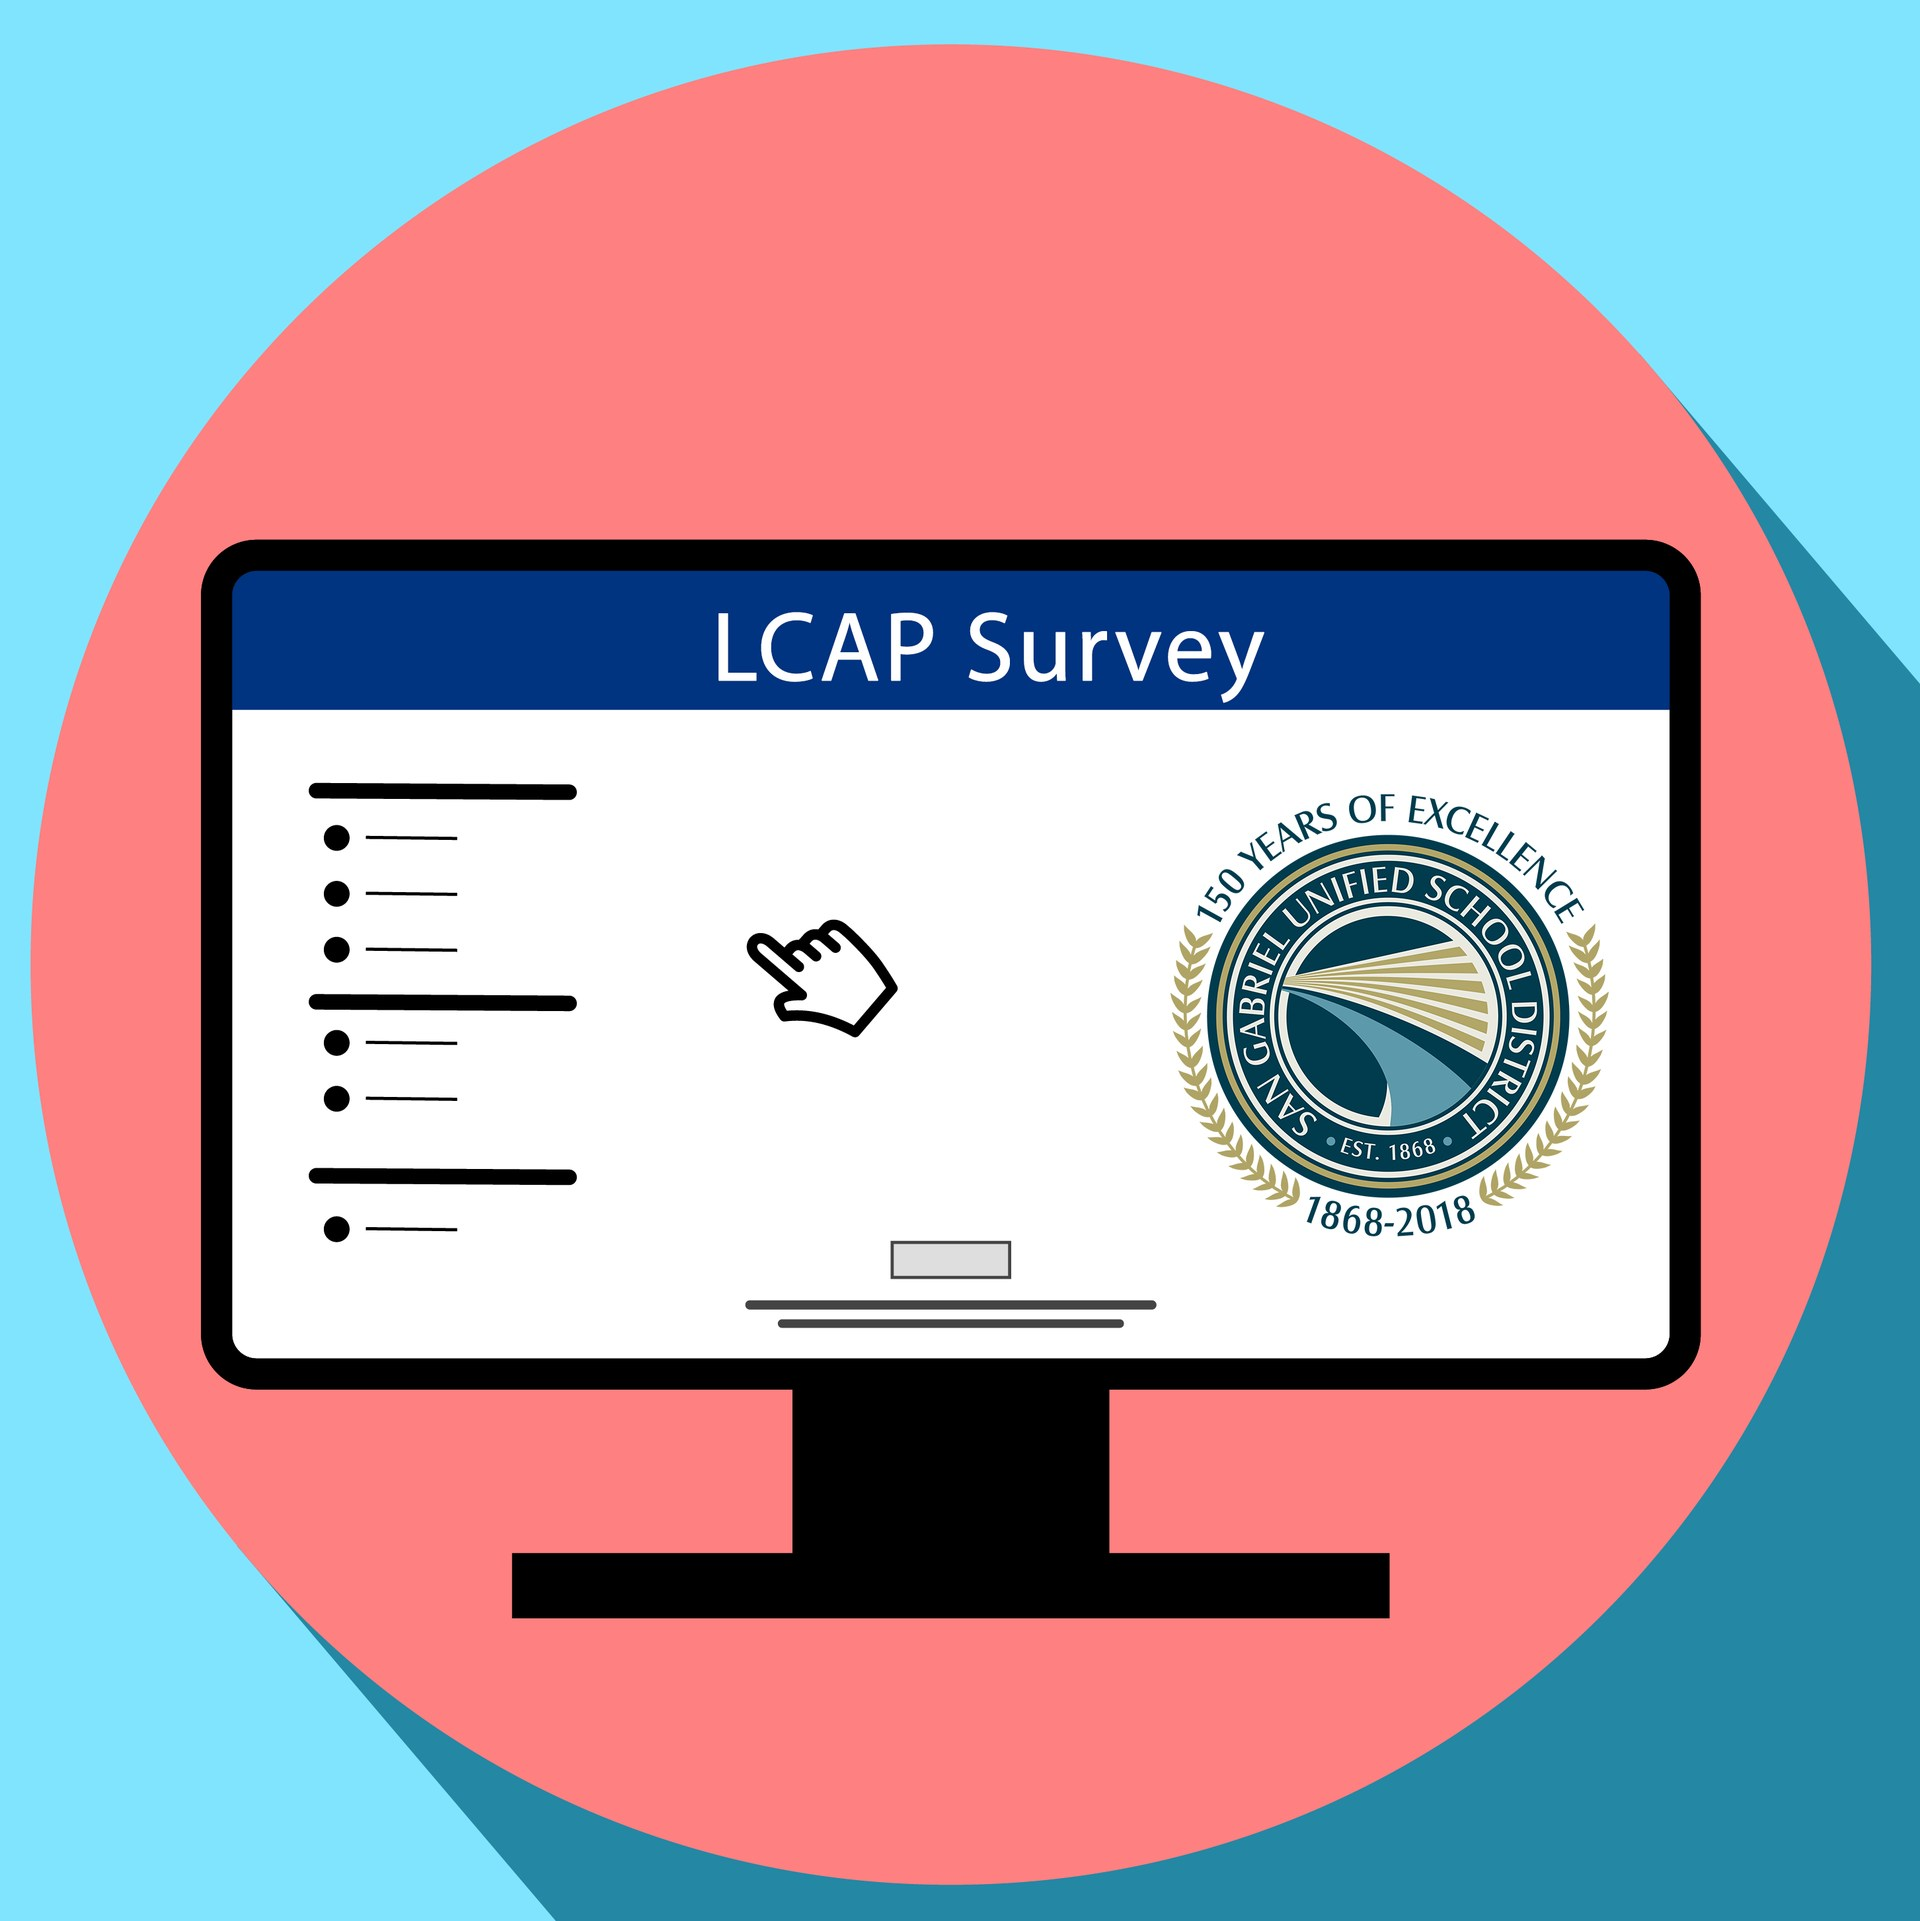 LCAP Survey Icon in a monitor